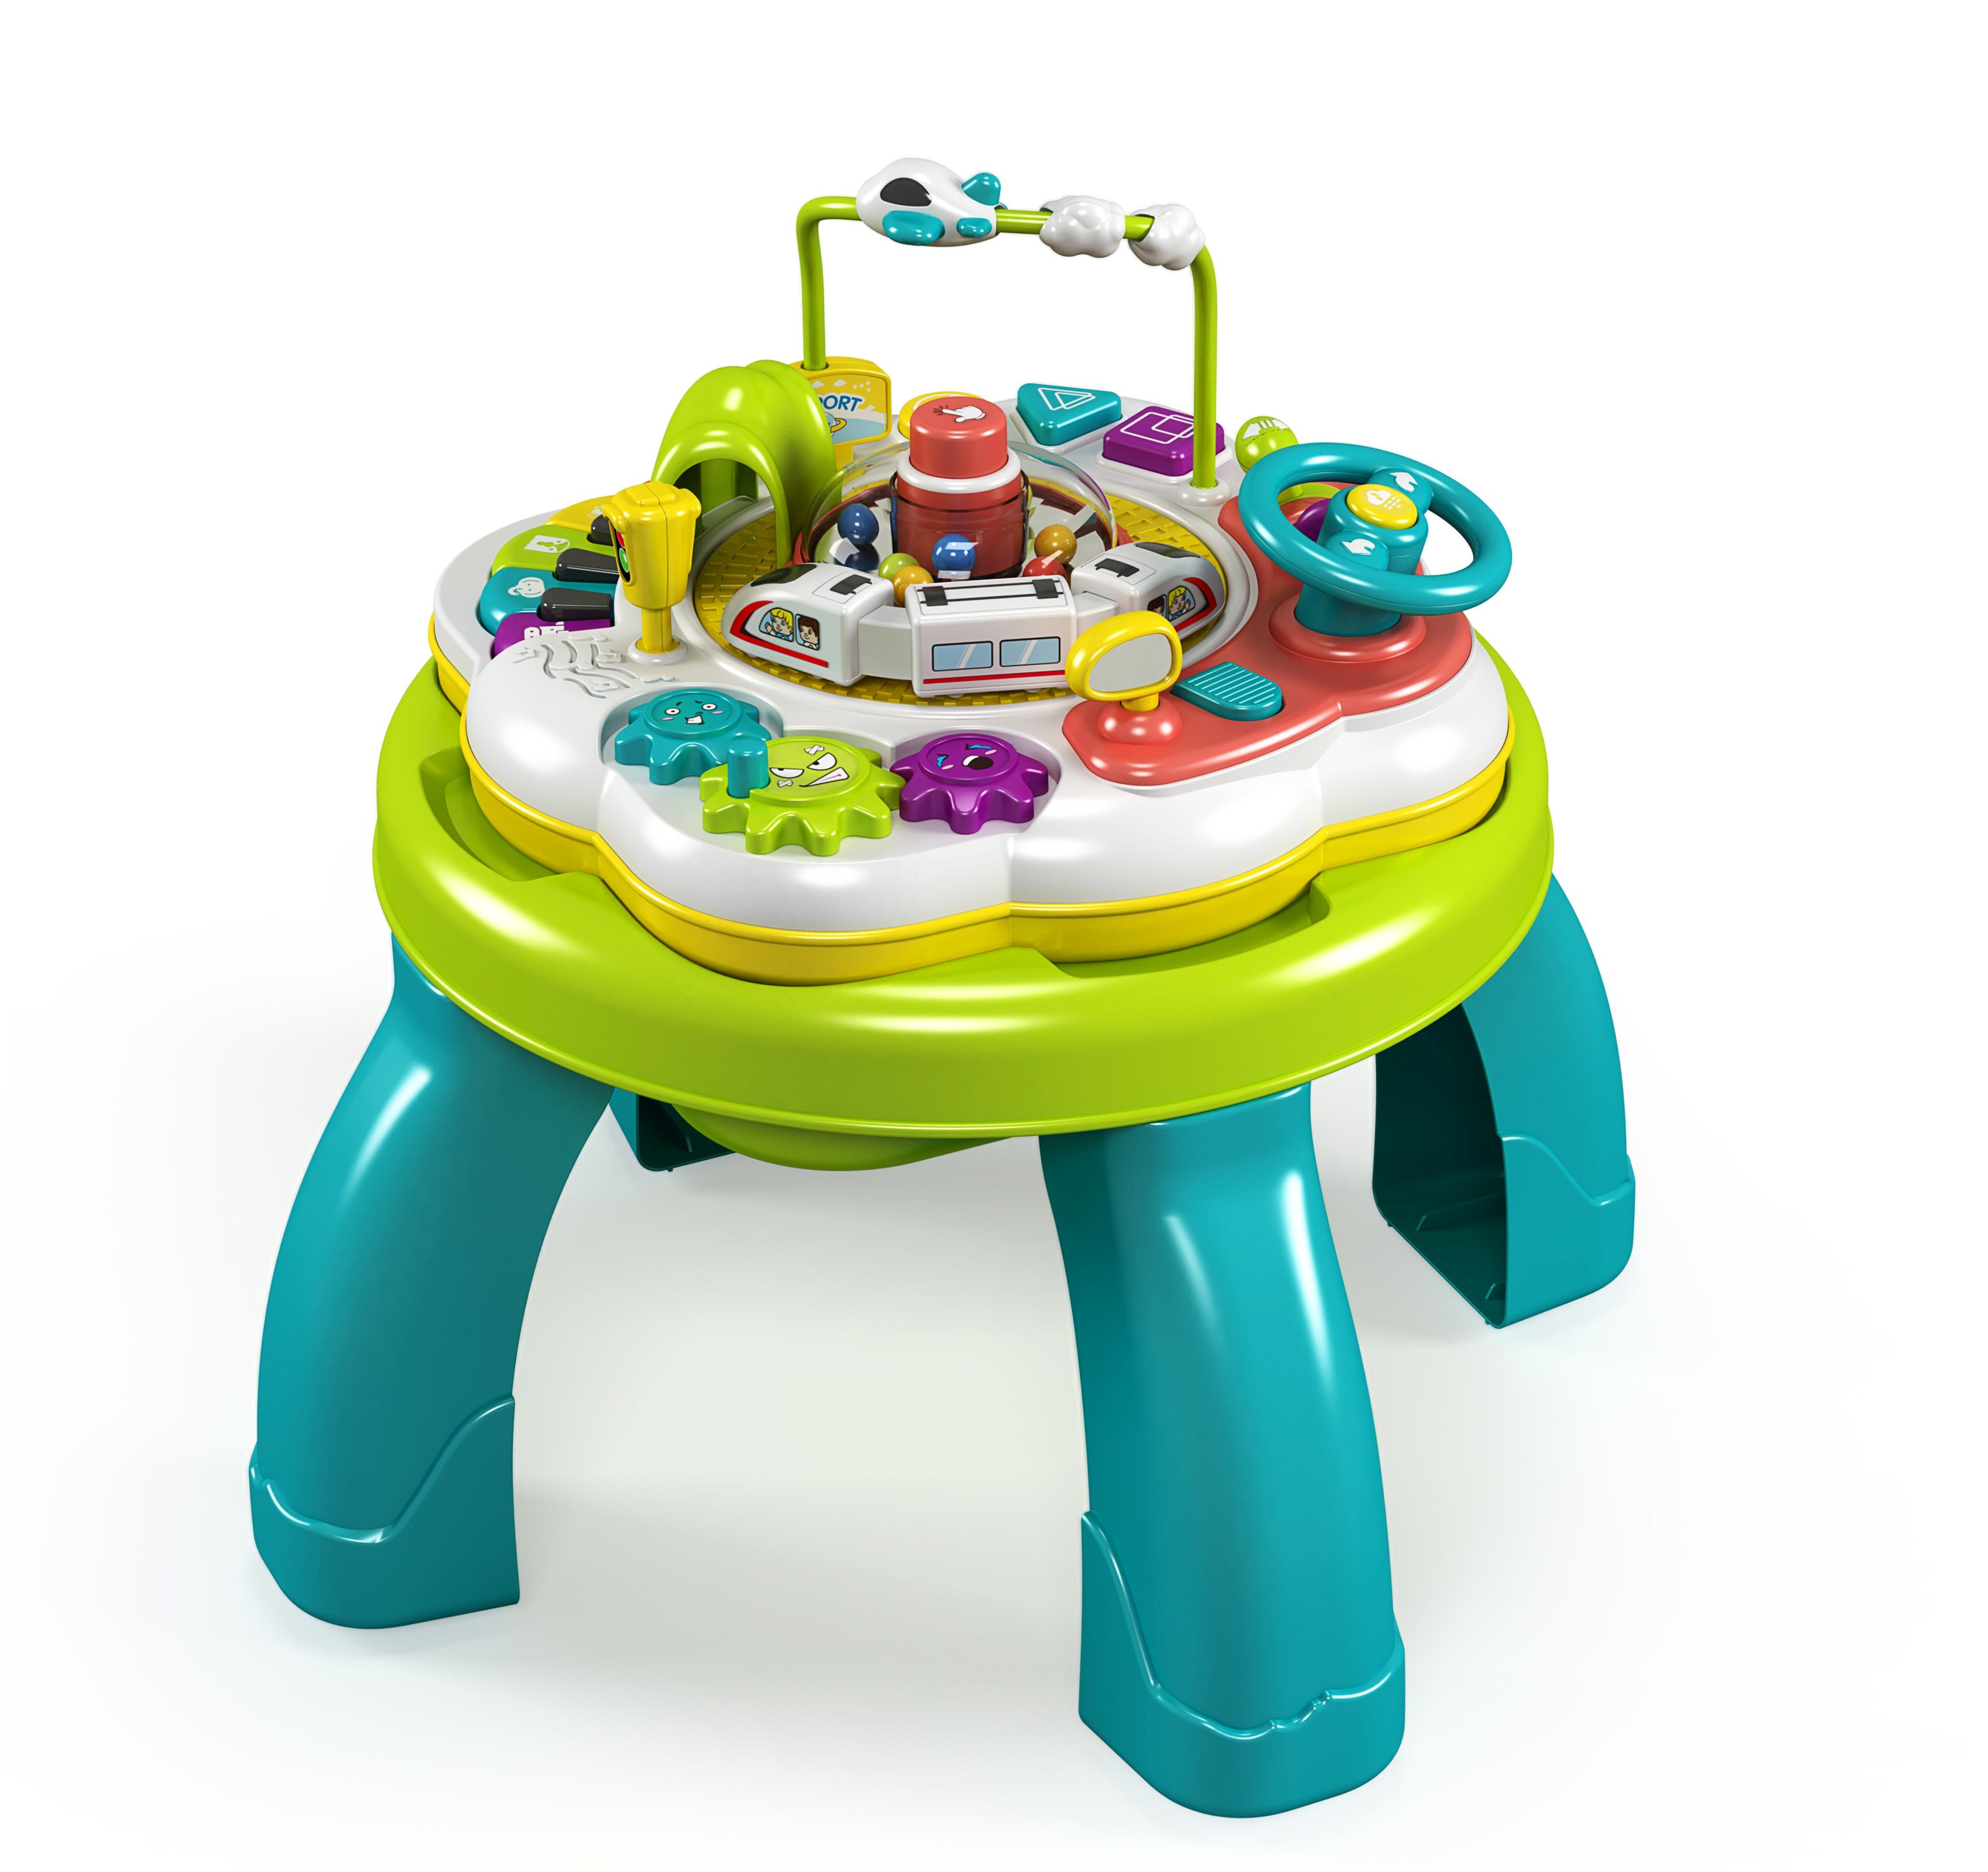 Kids Plastic Music Educational Toys Puzzle Piano Children's Room Baby Multi-functional Learning Table